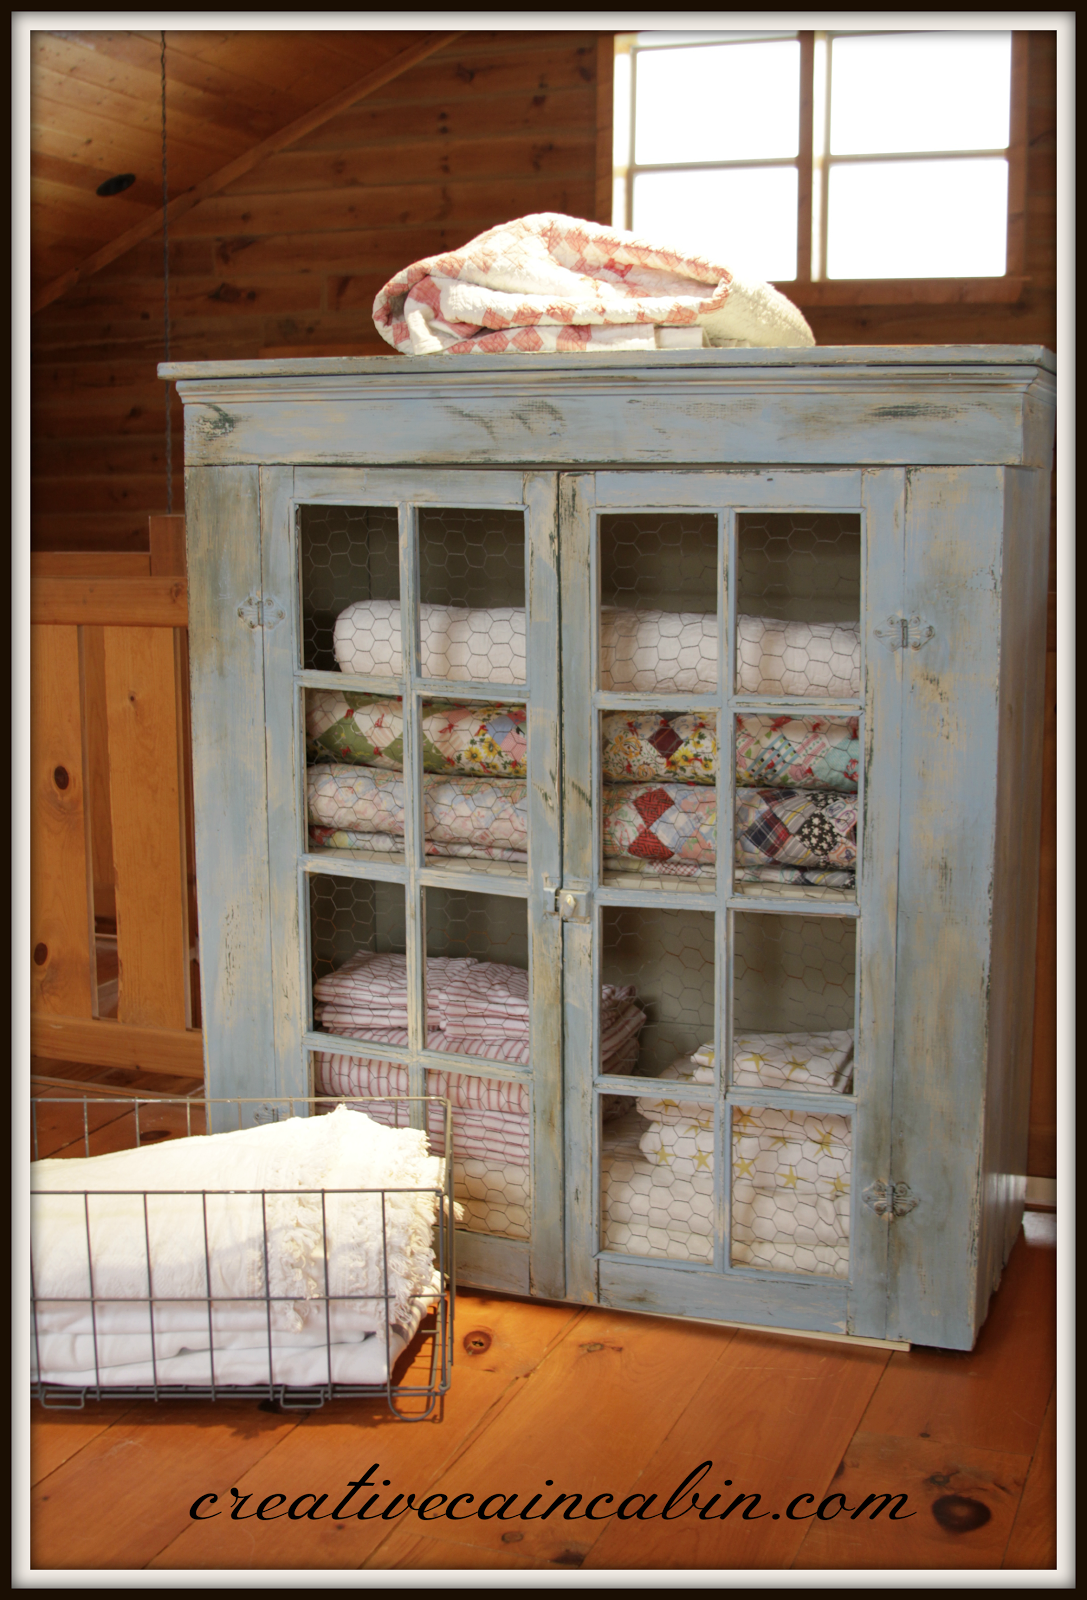 creative cain cabin: quilt cabinet makeover blanket storage in the